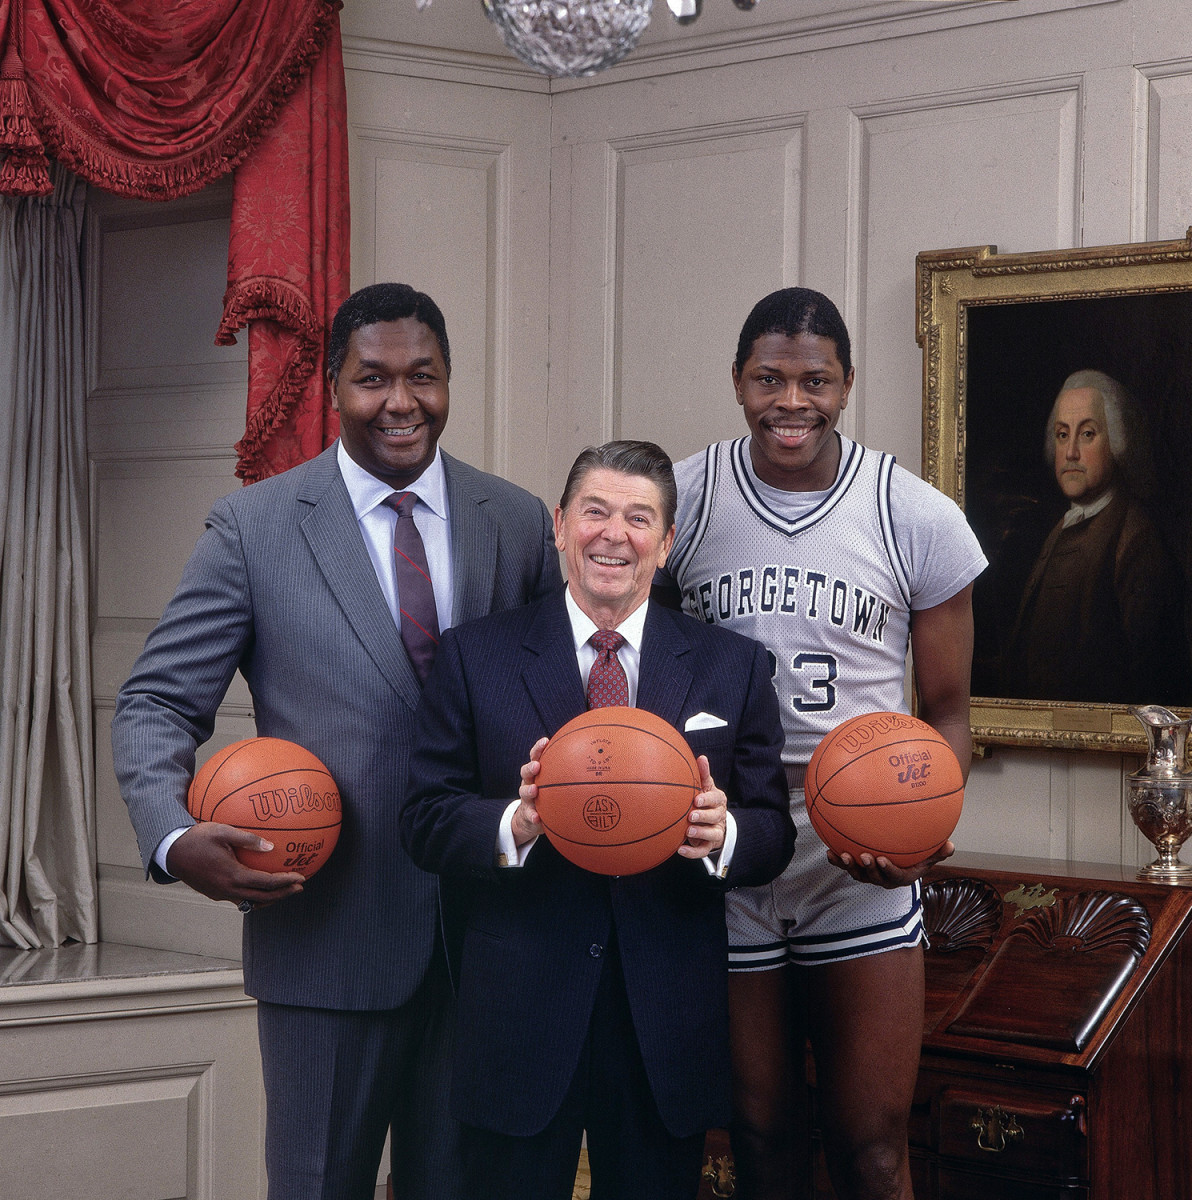 Portrait of United States President Ronald Reagan with Georgetown coach John Thompson (L) and Patrick Ewing (33) during photo shoot at White House.